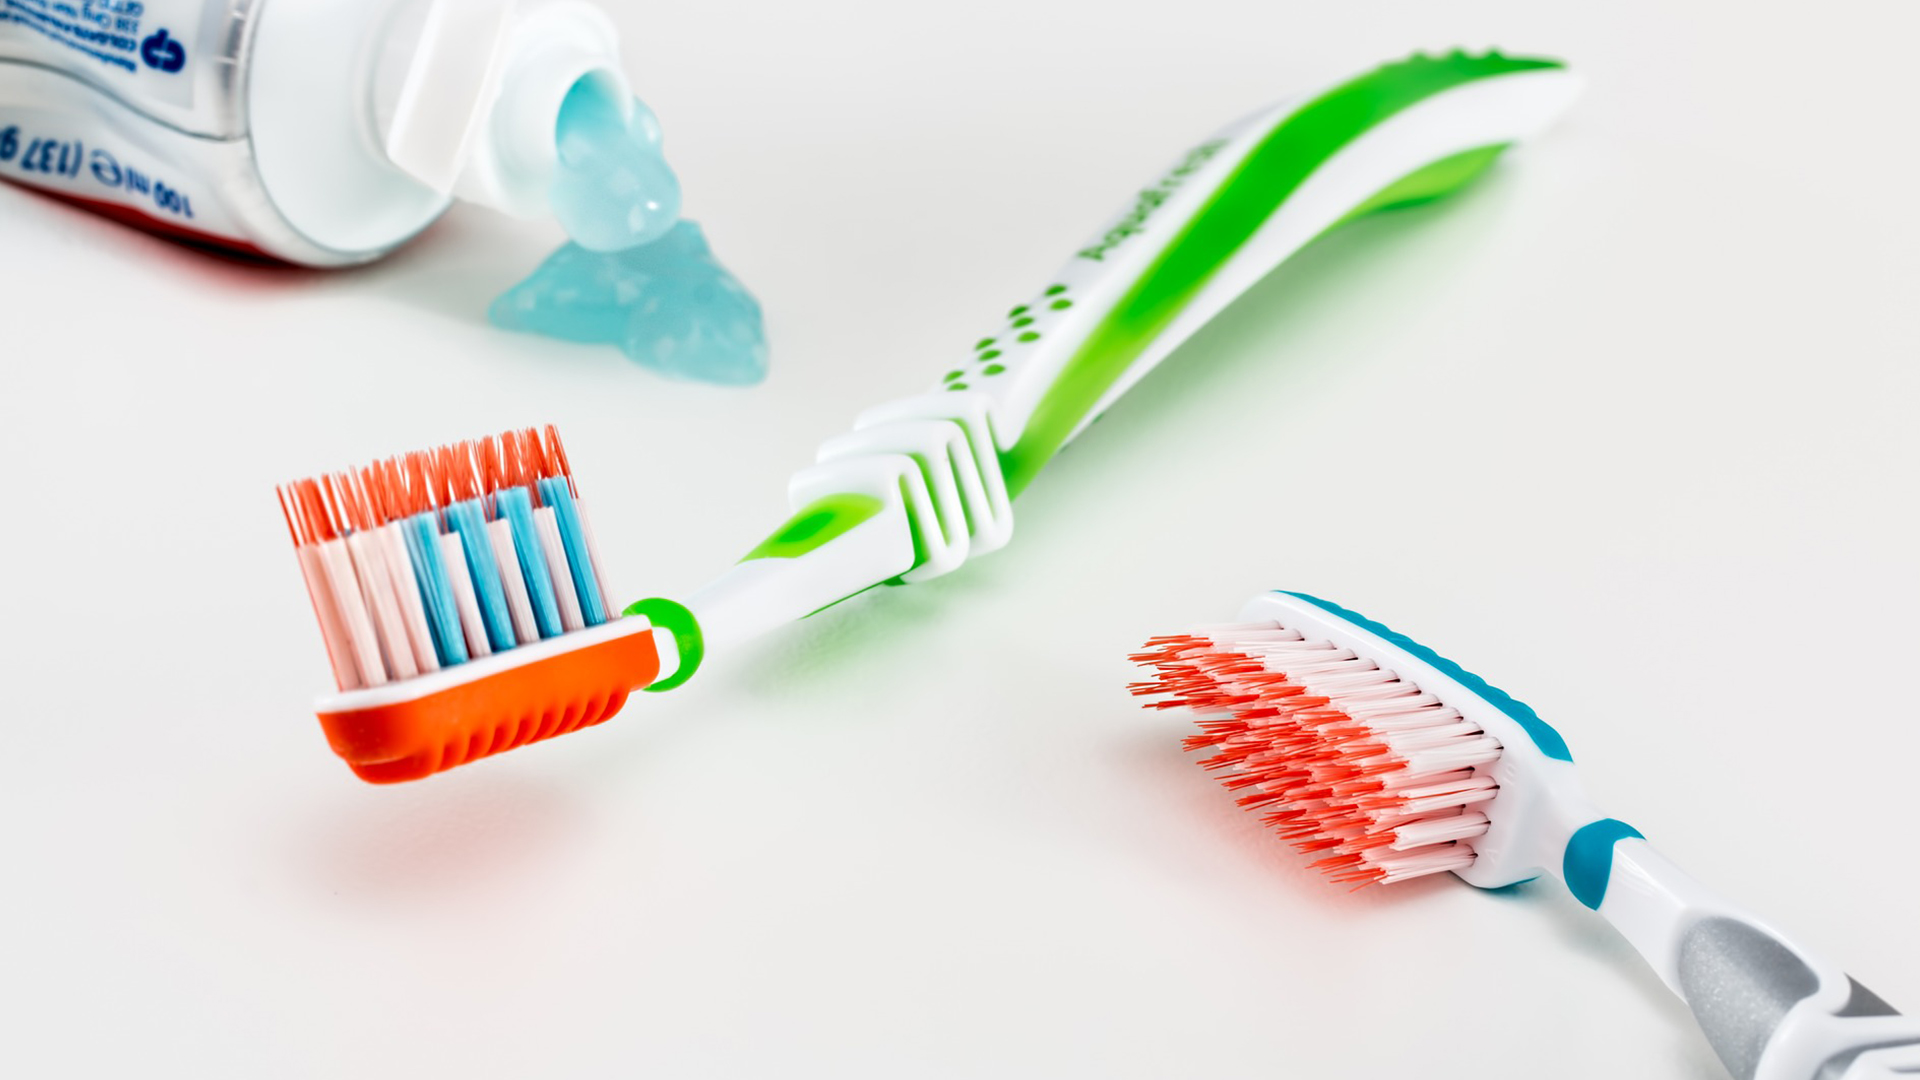 list of best toothbrush brands for oral health or oralcare